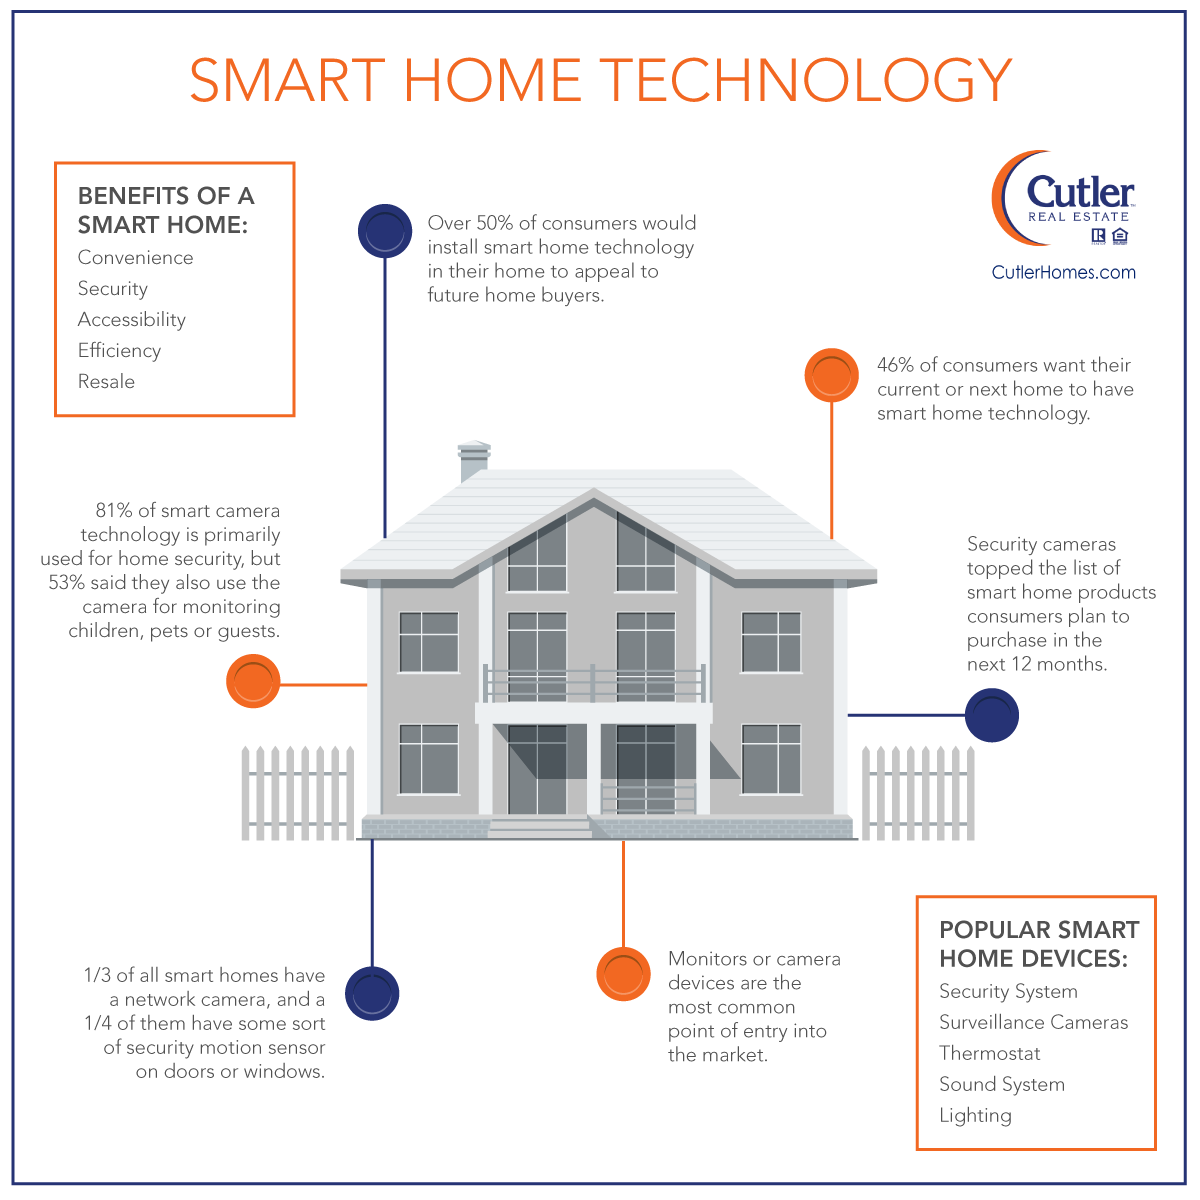 share article smart home technology cutler real estate